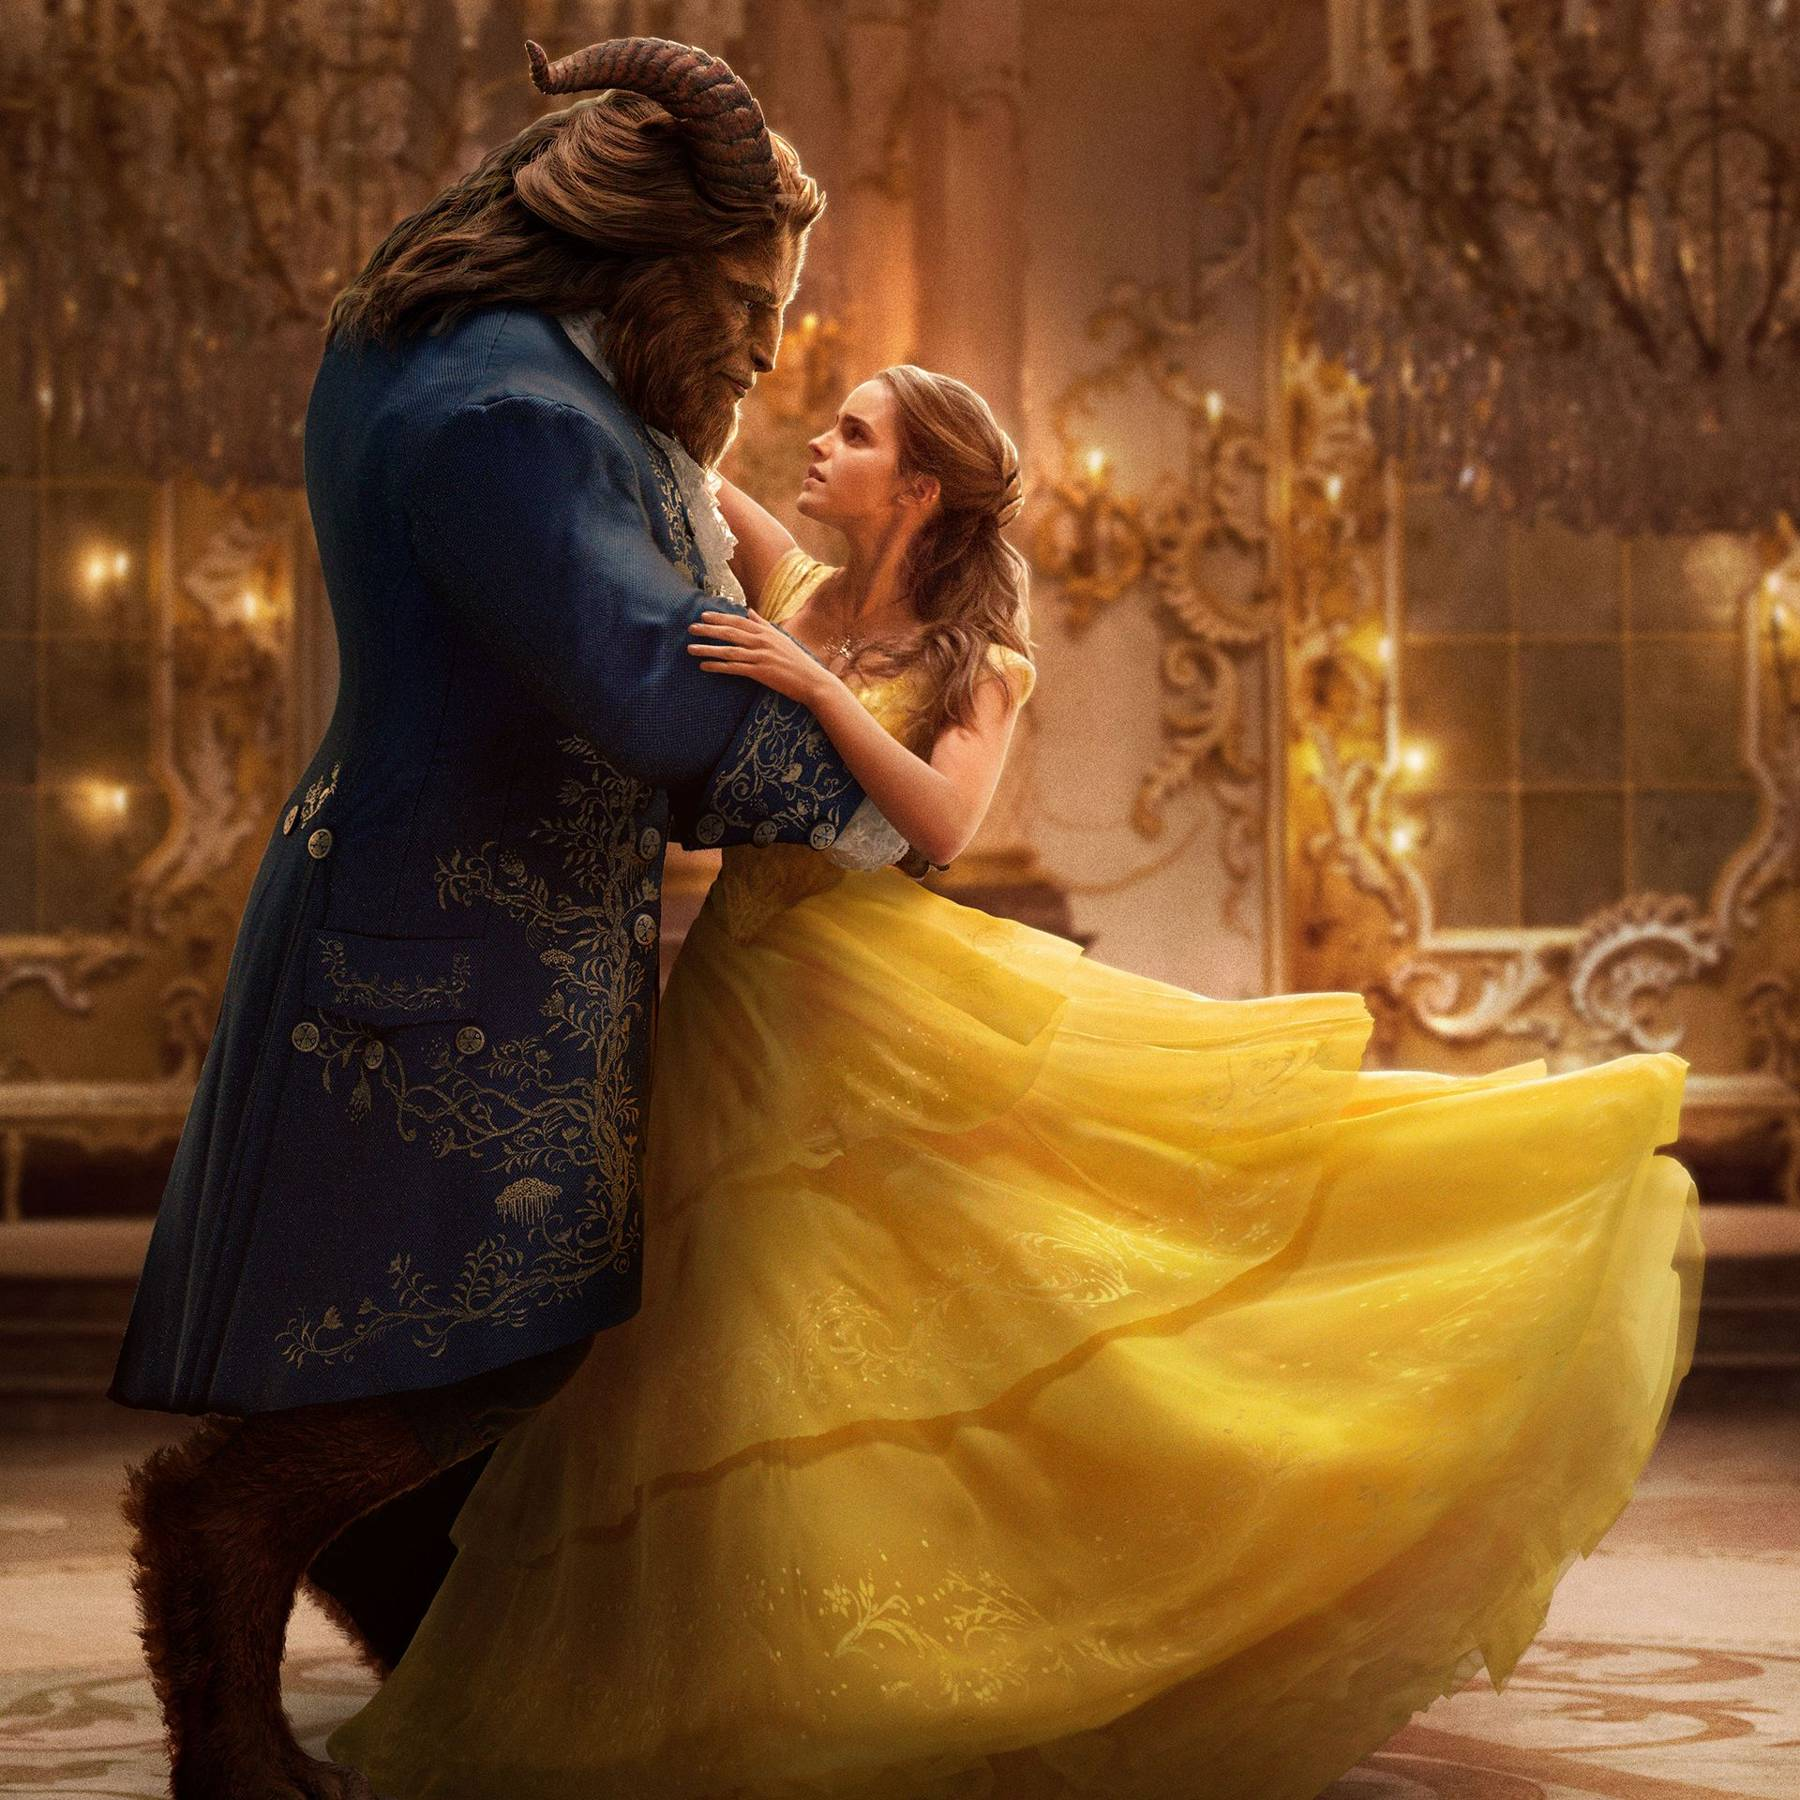 beauty and the beast full movie download mp4 2017 hindi